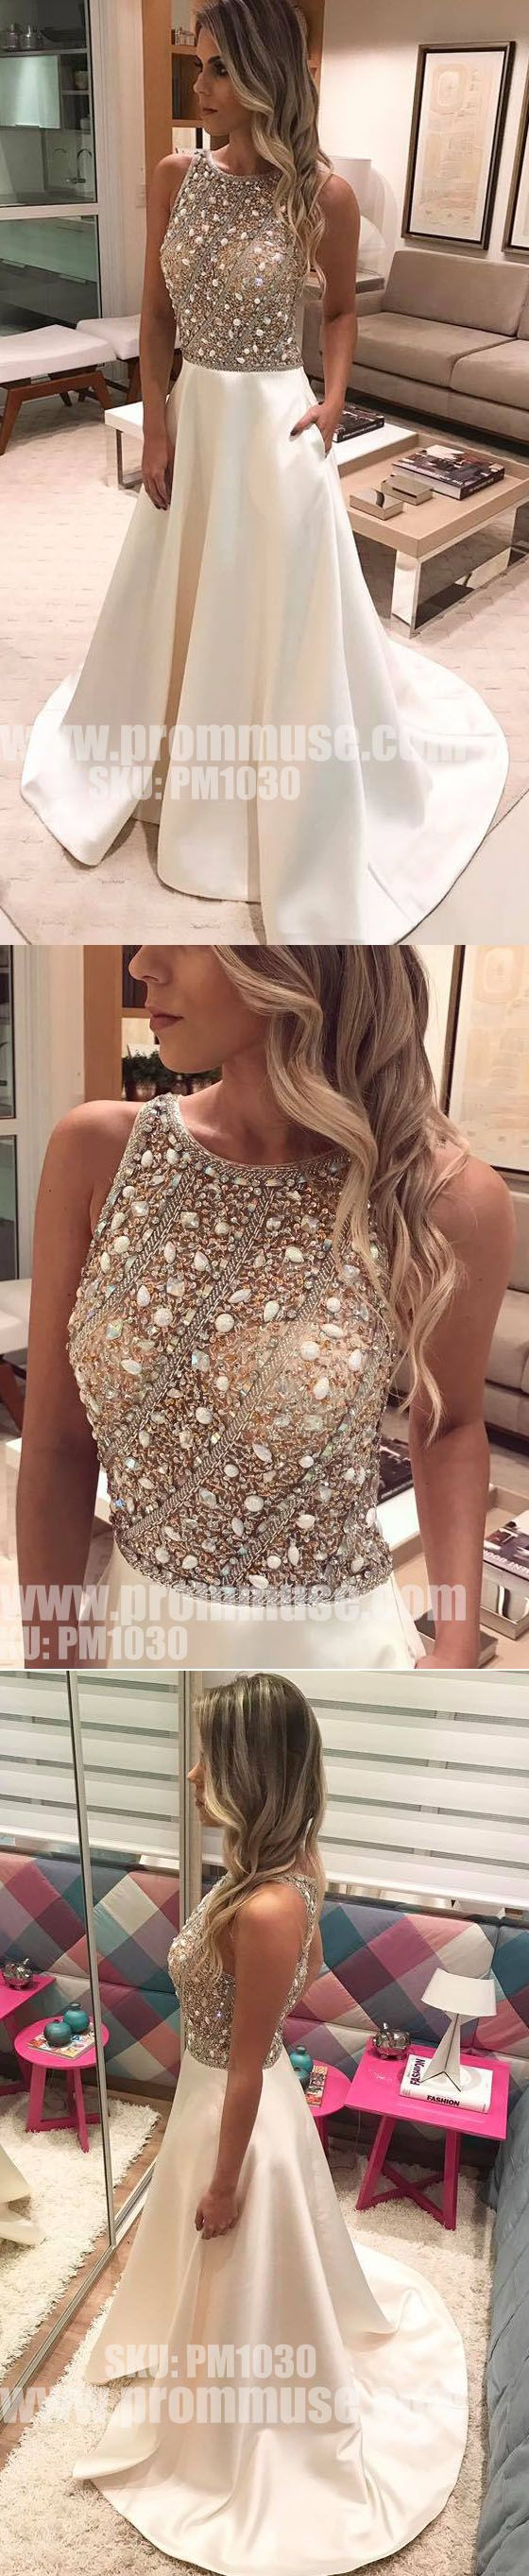 Charming Beaded Top Formal Inexpensive Evening Lon… -  Prom shopping is alive and well on Pinterest. Compare prices for this @ Wrhel.com before you commit to buy. #Prom